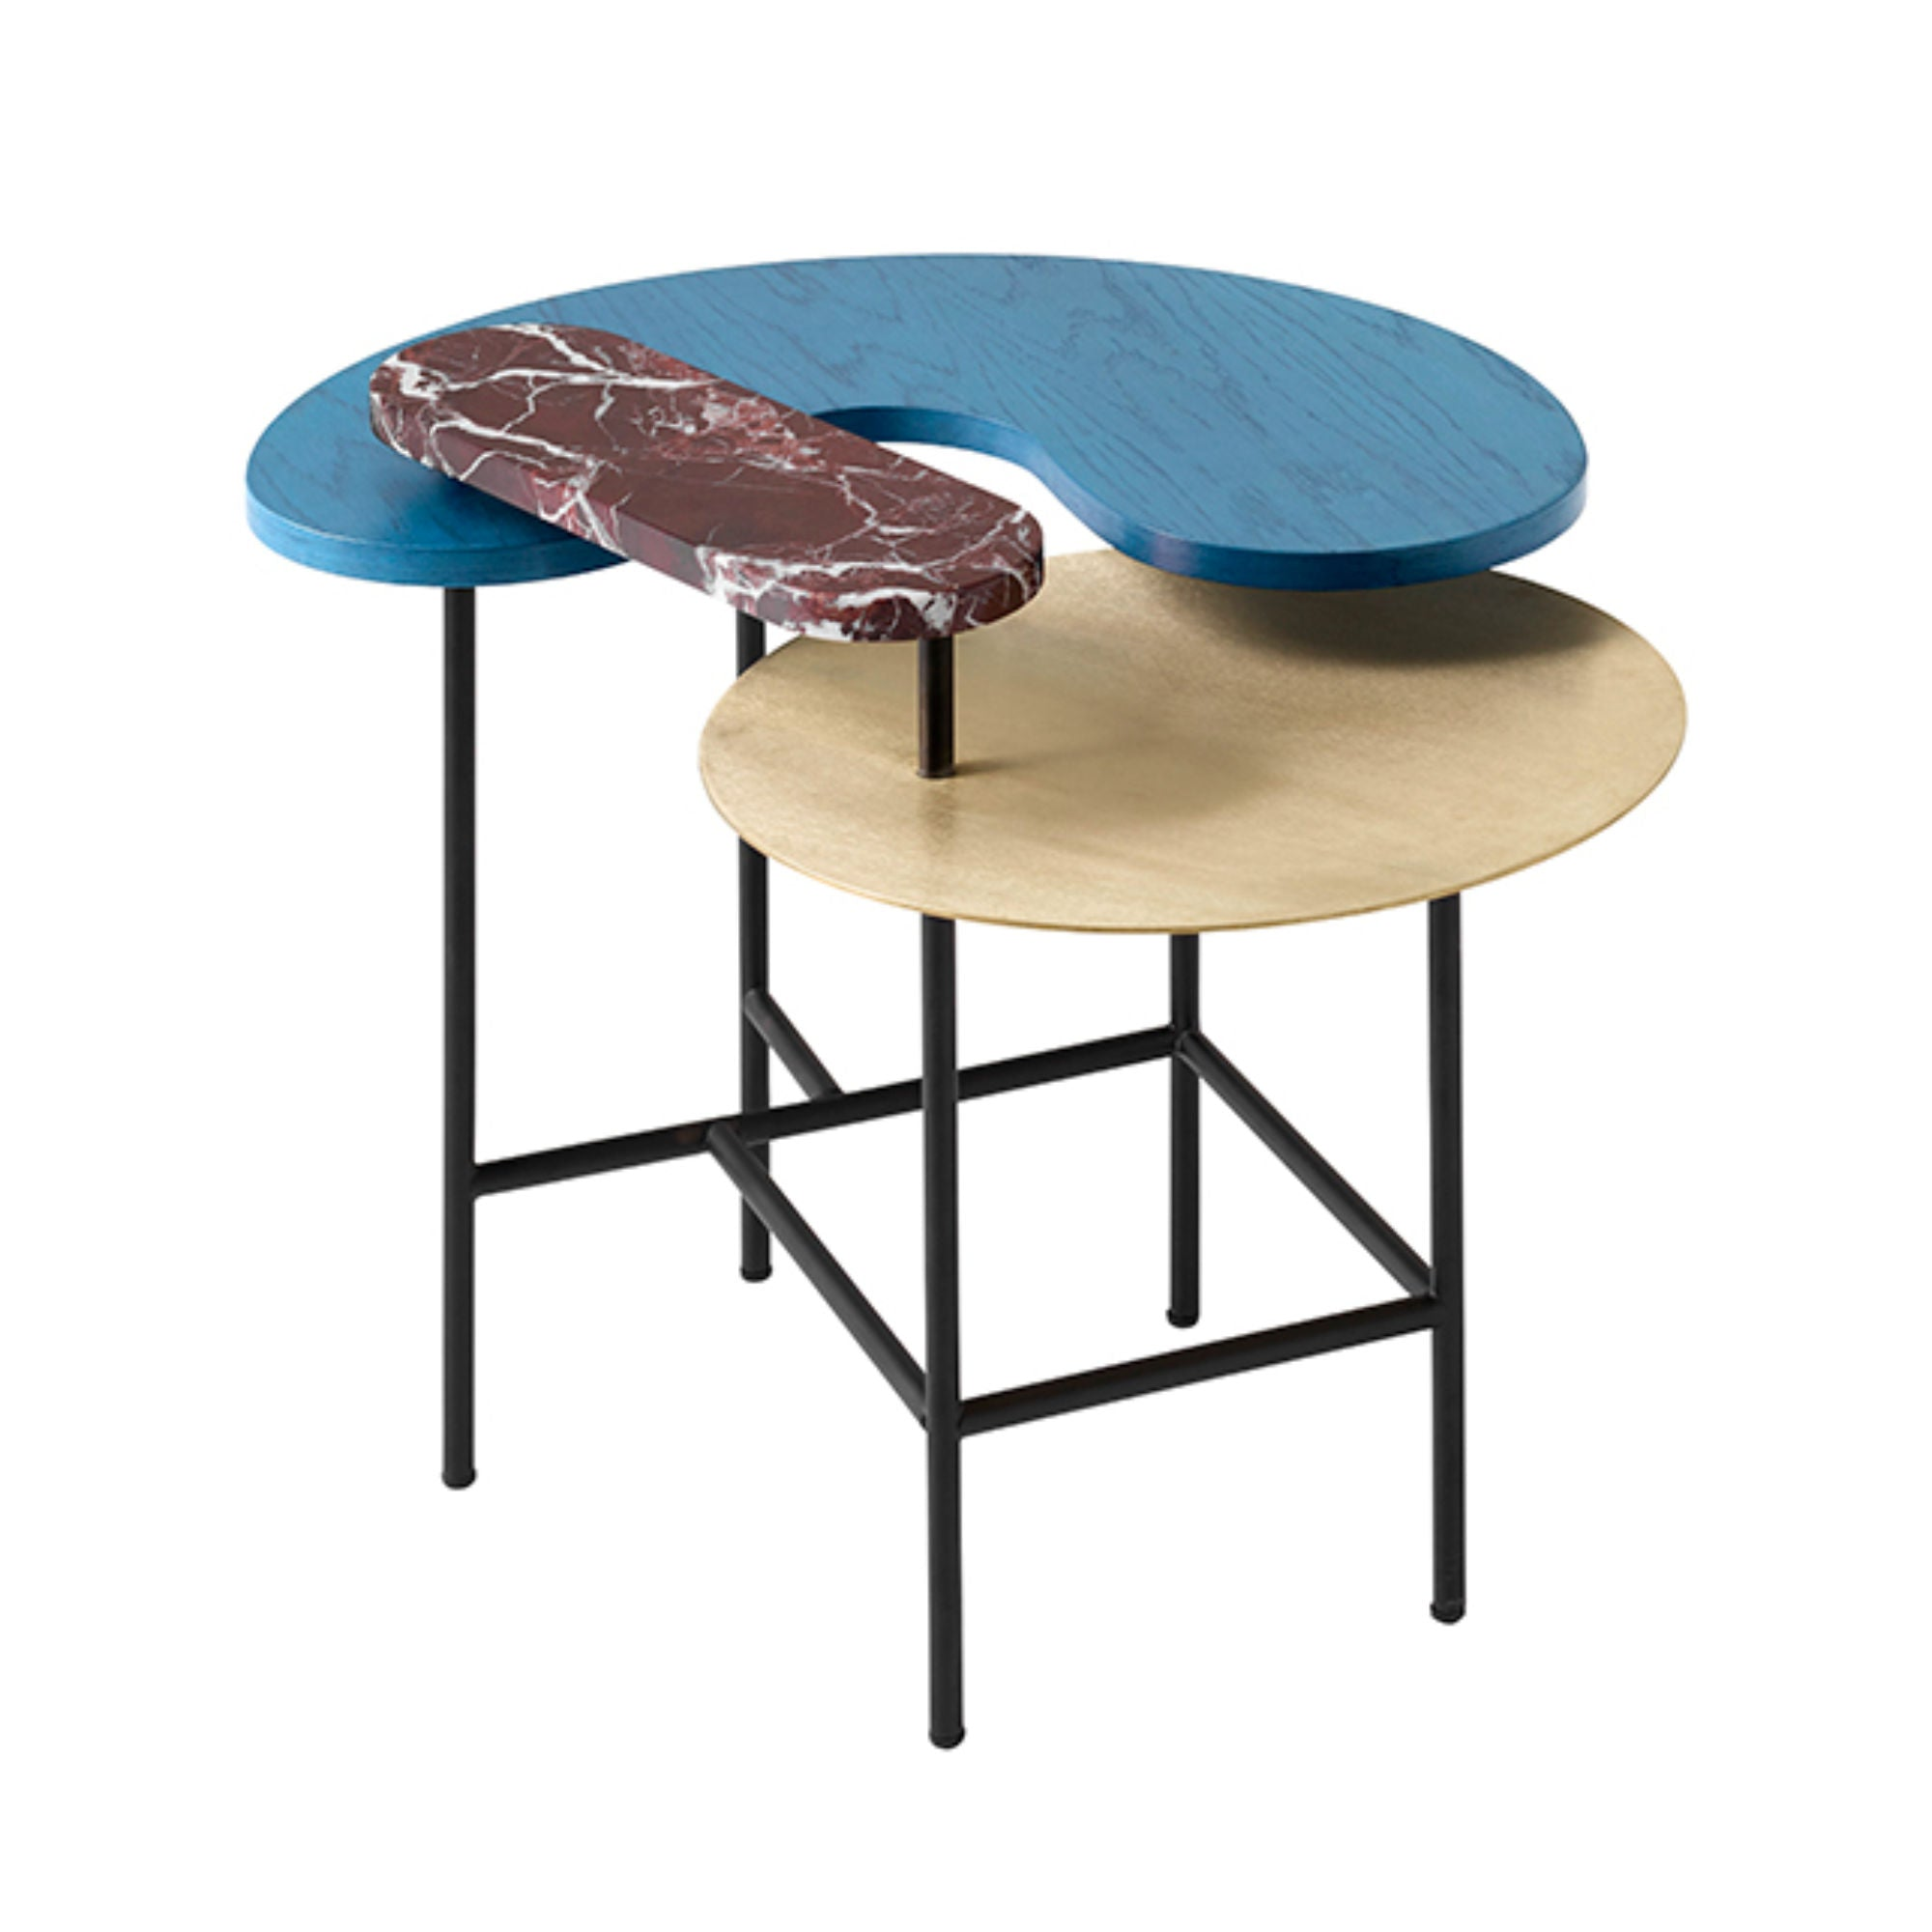 &Tradition JH8 Palette lounge table, blue